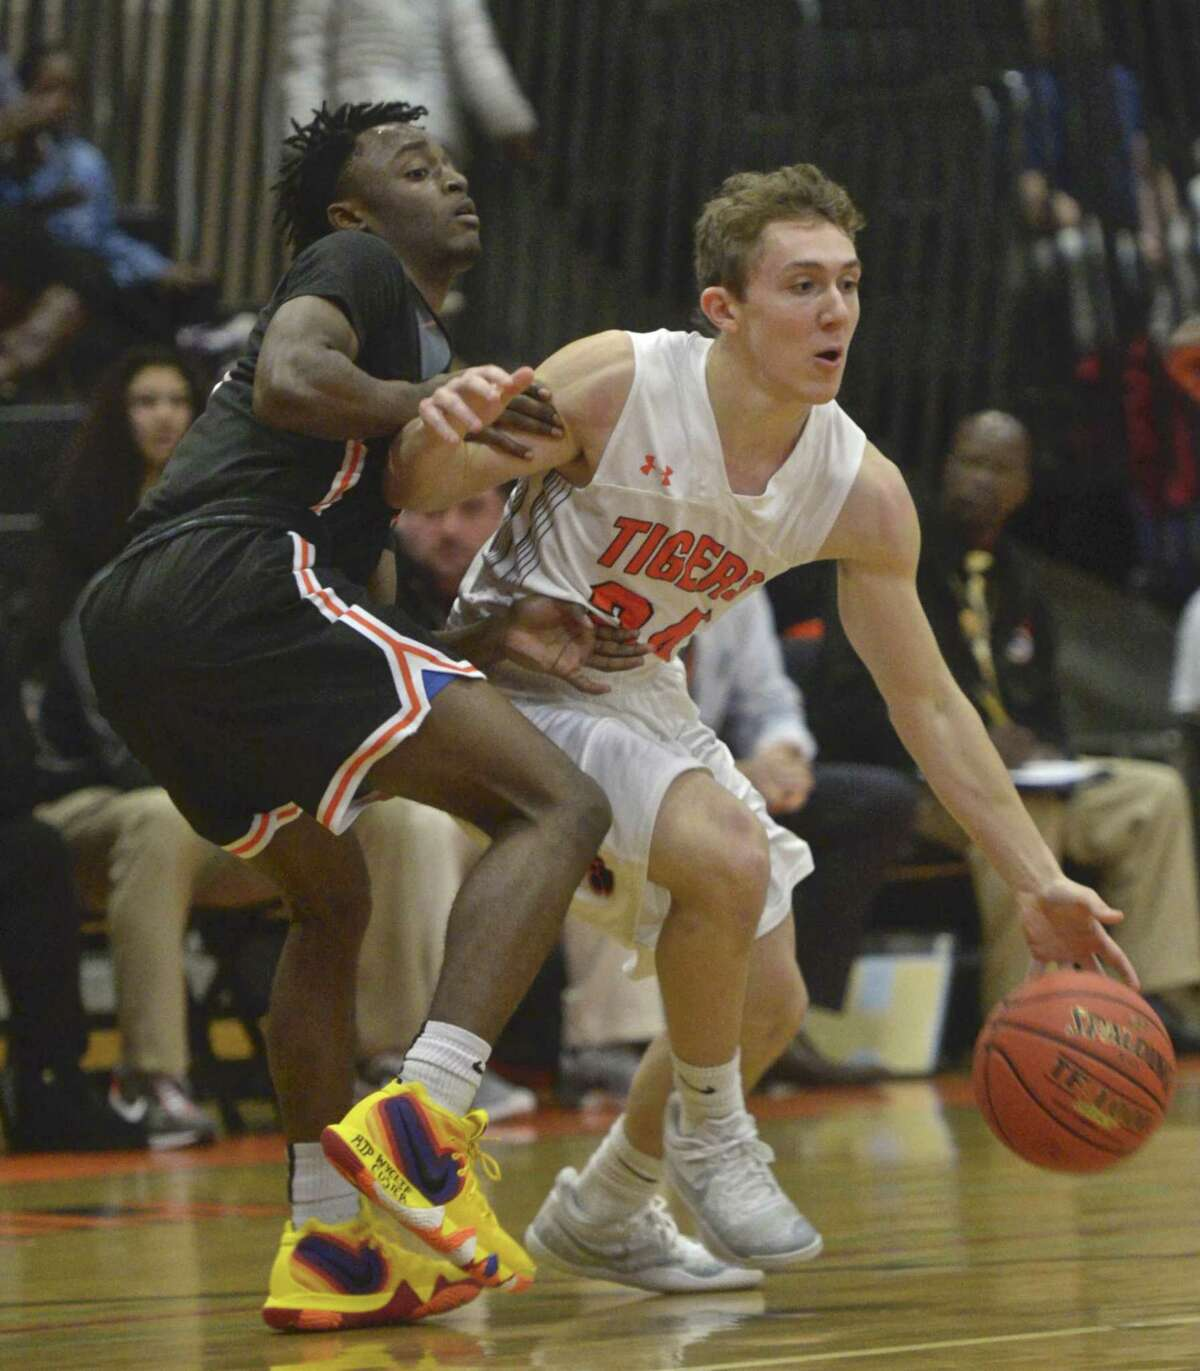 Ridgefield's James St. Pierre, right, drives by Stamford's Tyheim Burgess in Friday's game at Ridgefield High School.